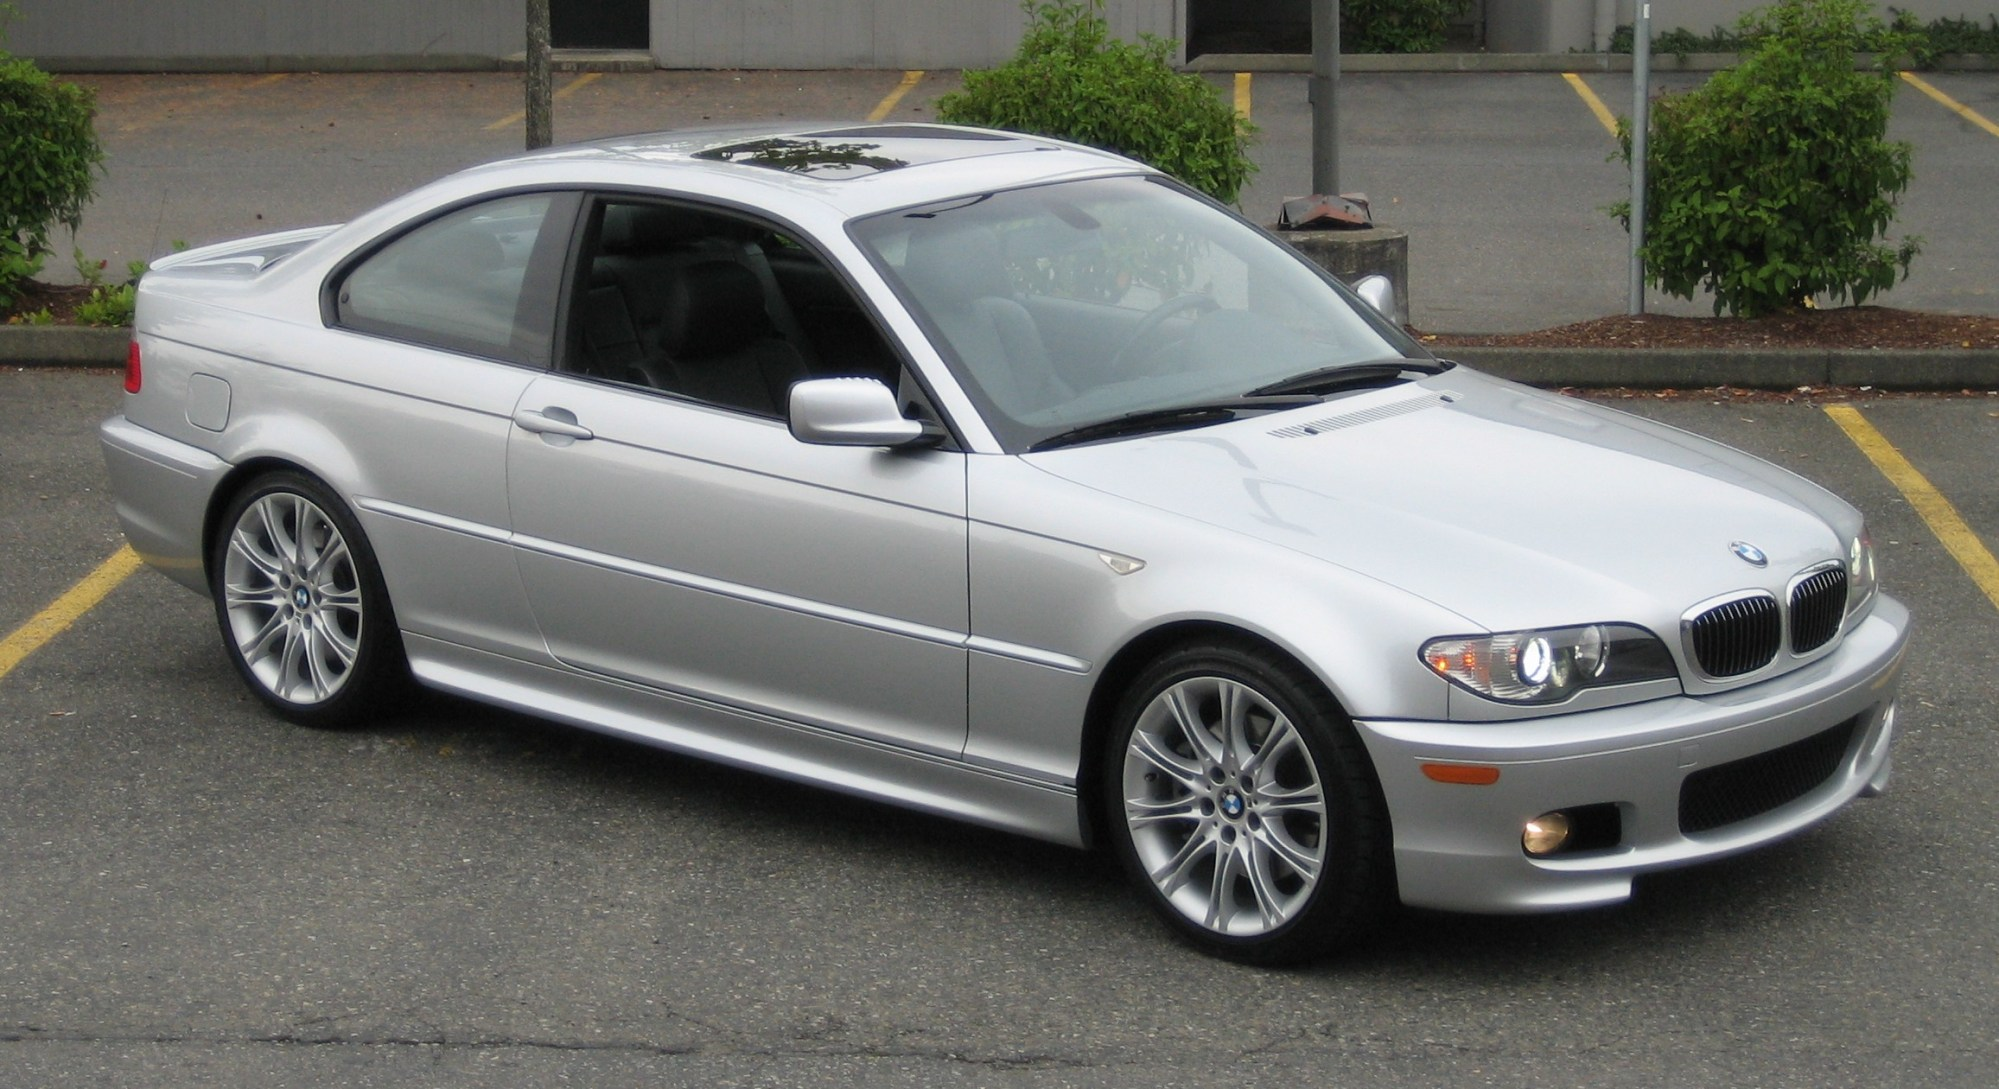 hight resolution of file 2005 bmw 330ci zhp silver jpg